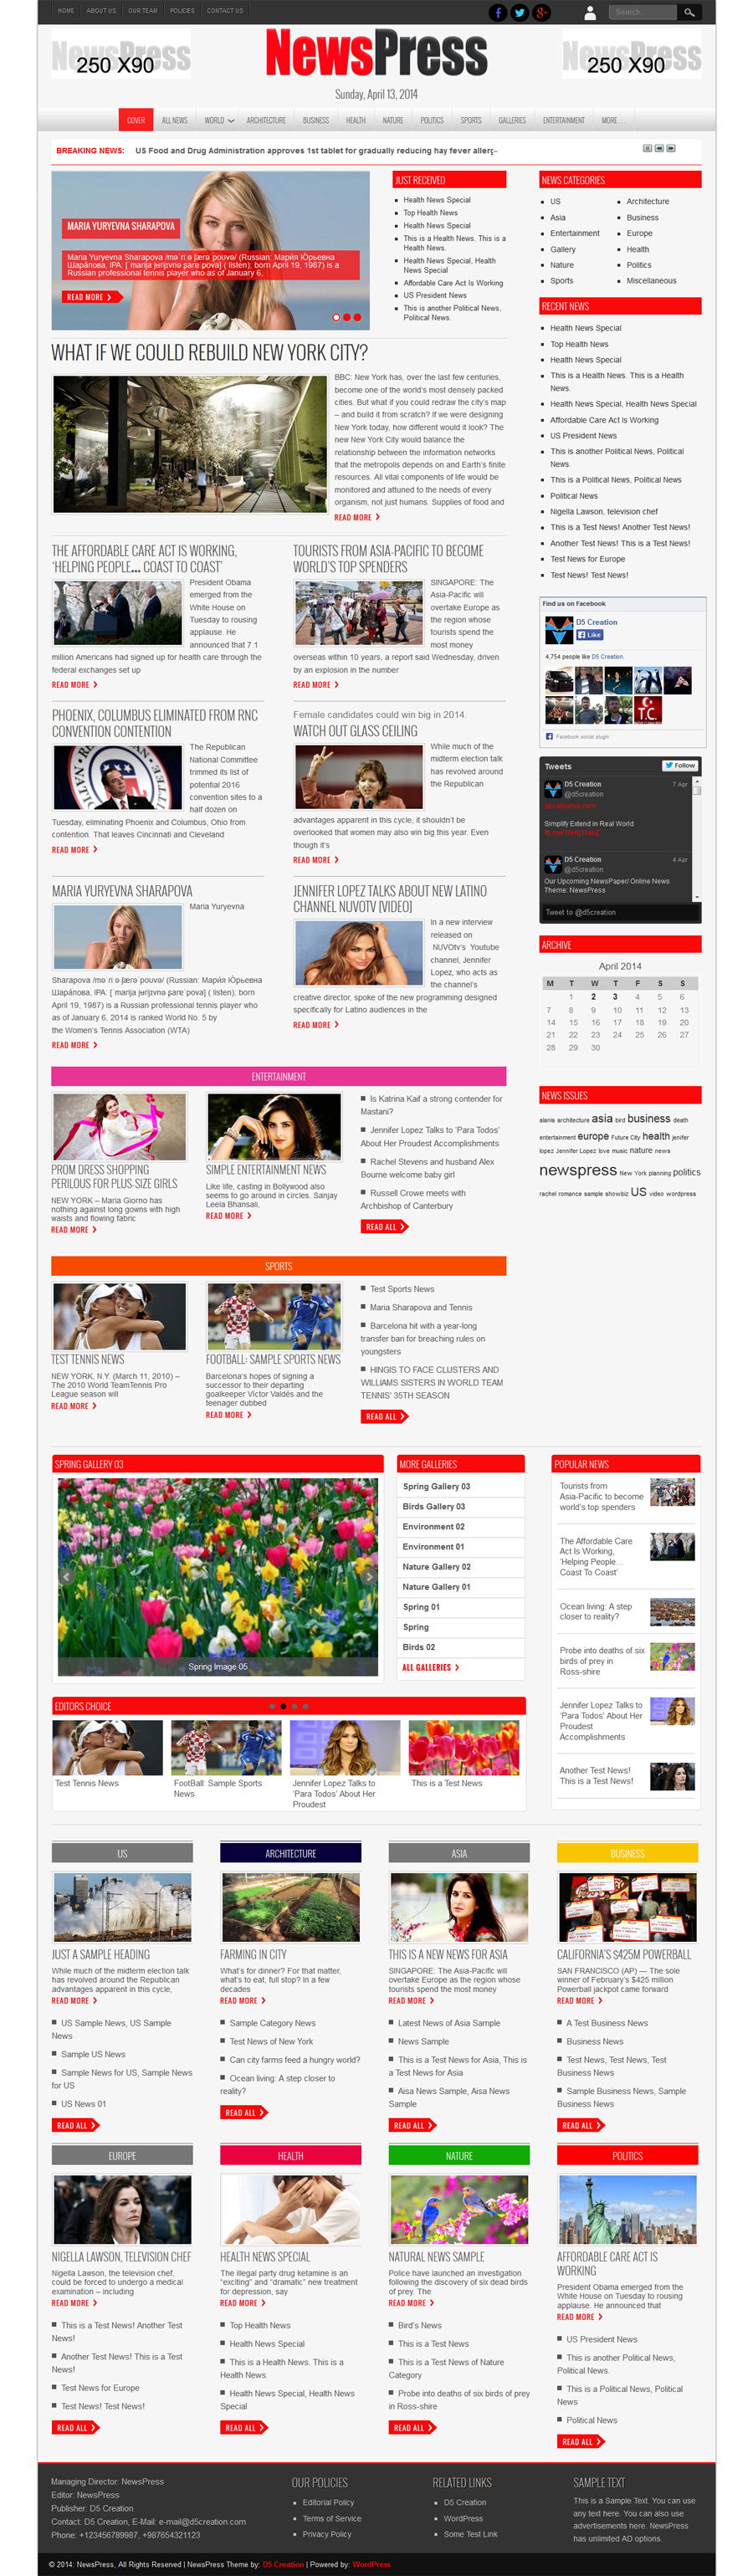 NewsPress, CSS3 and HTML5 Powered RESPONSIVE Theme